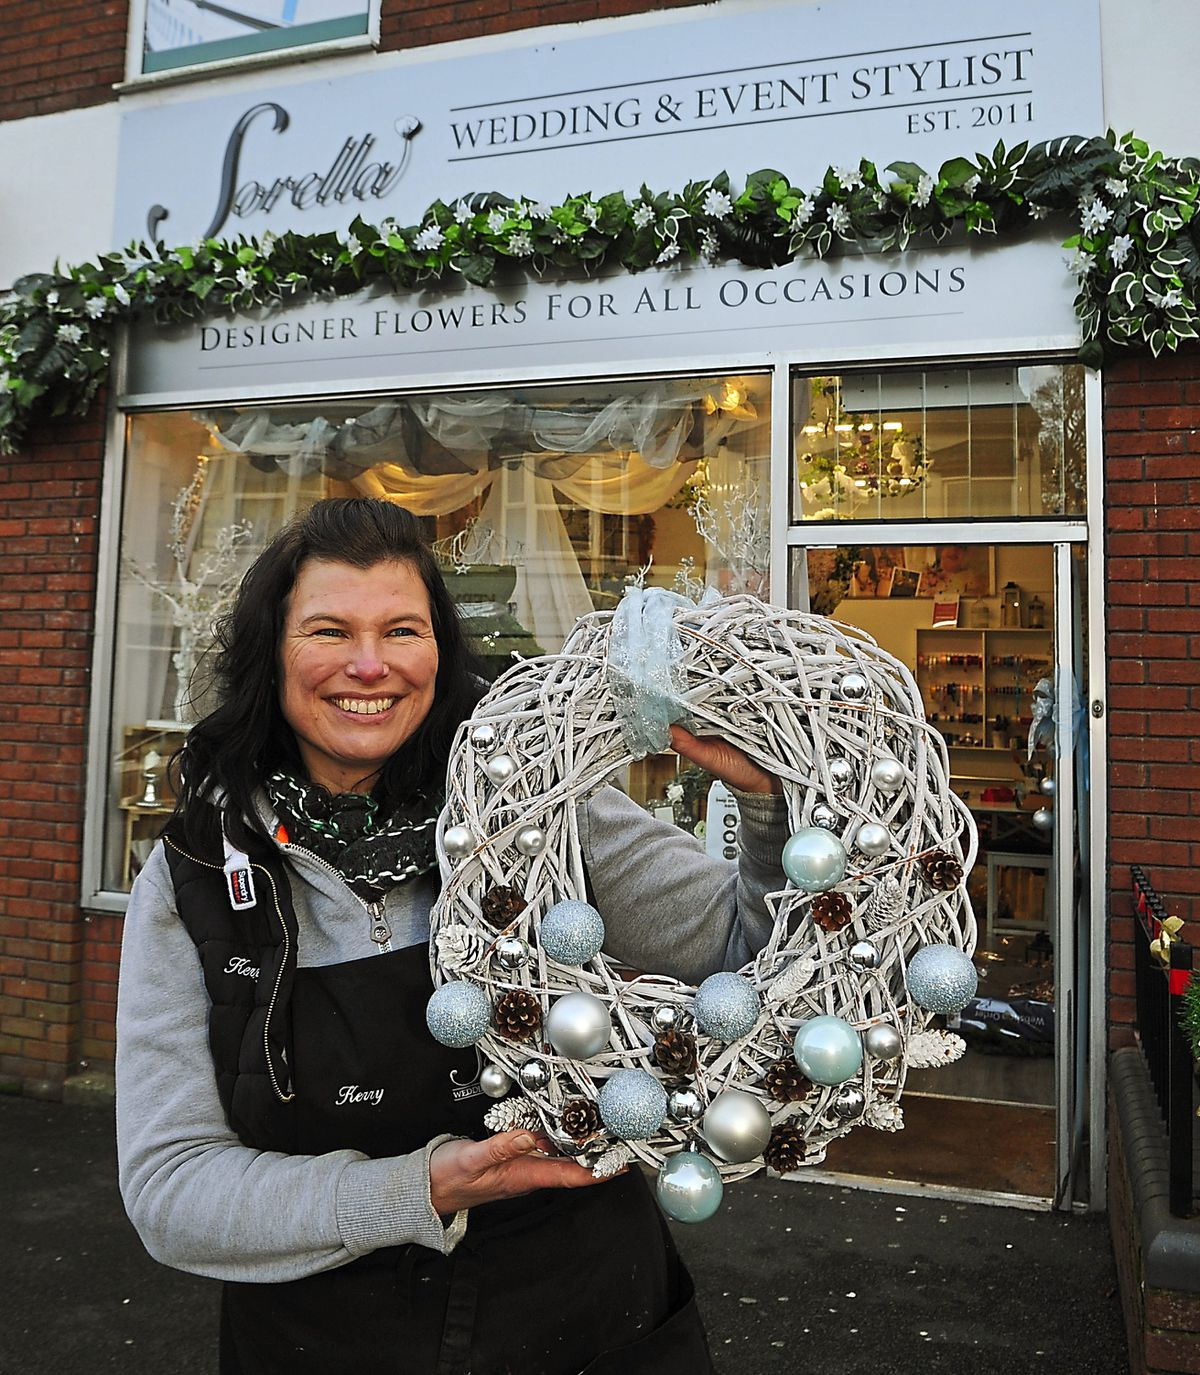 Kerry Goodyear at Sorella Florist & Event Stylist, Hednesford